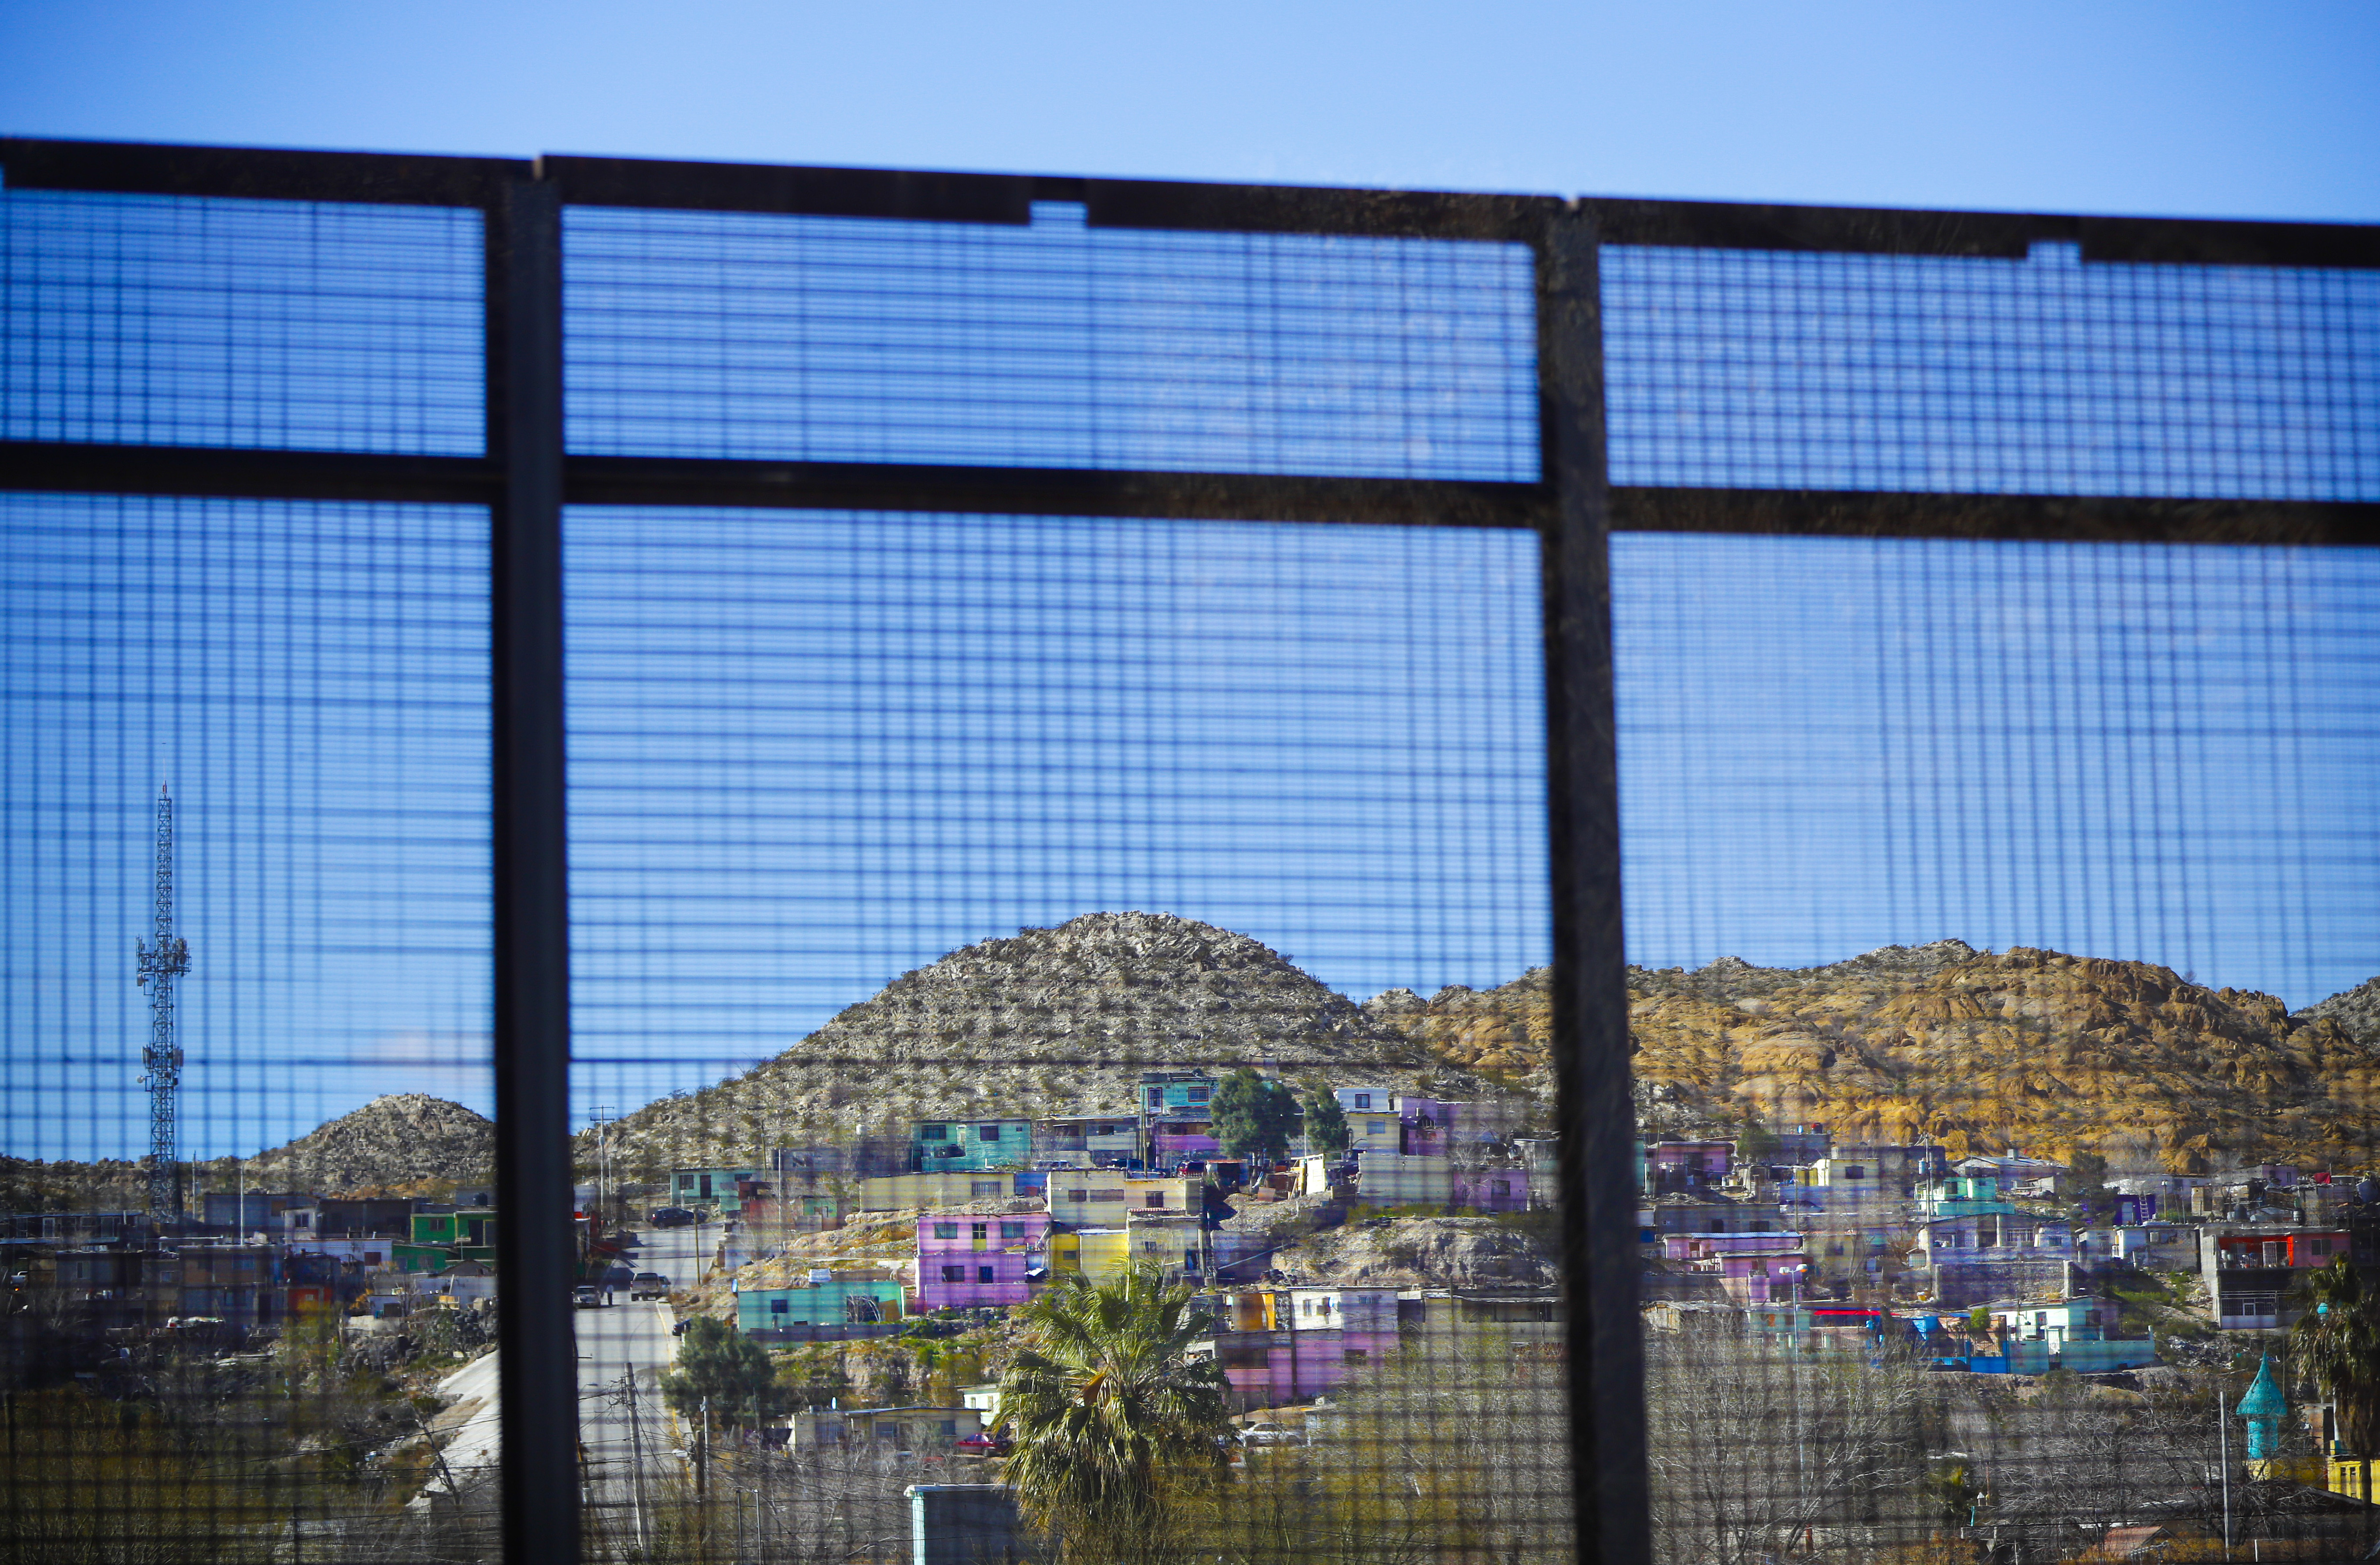 Migrants set fire, escape Ciudad Juarez immigration facility